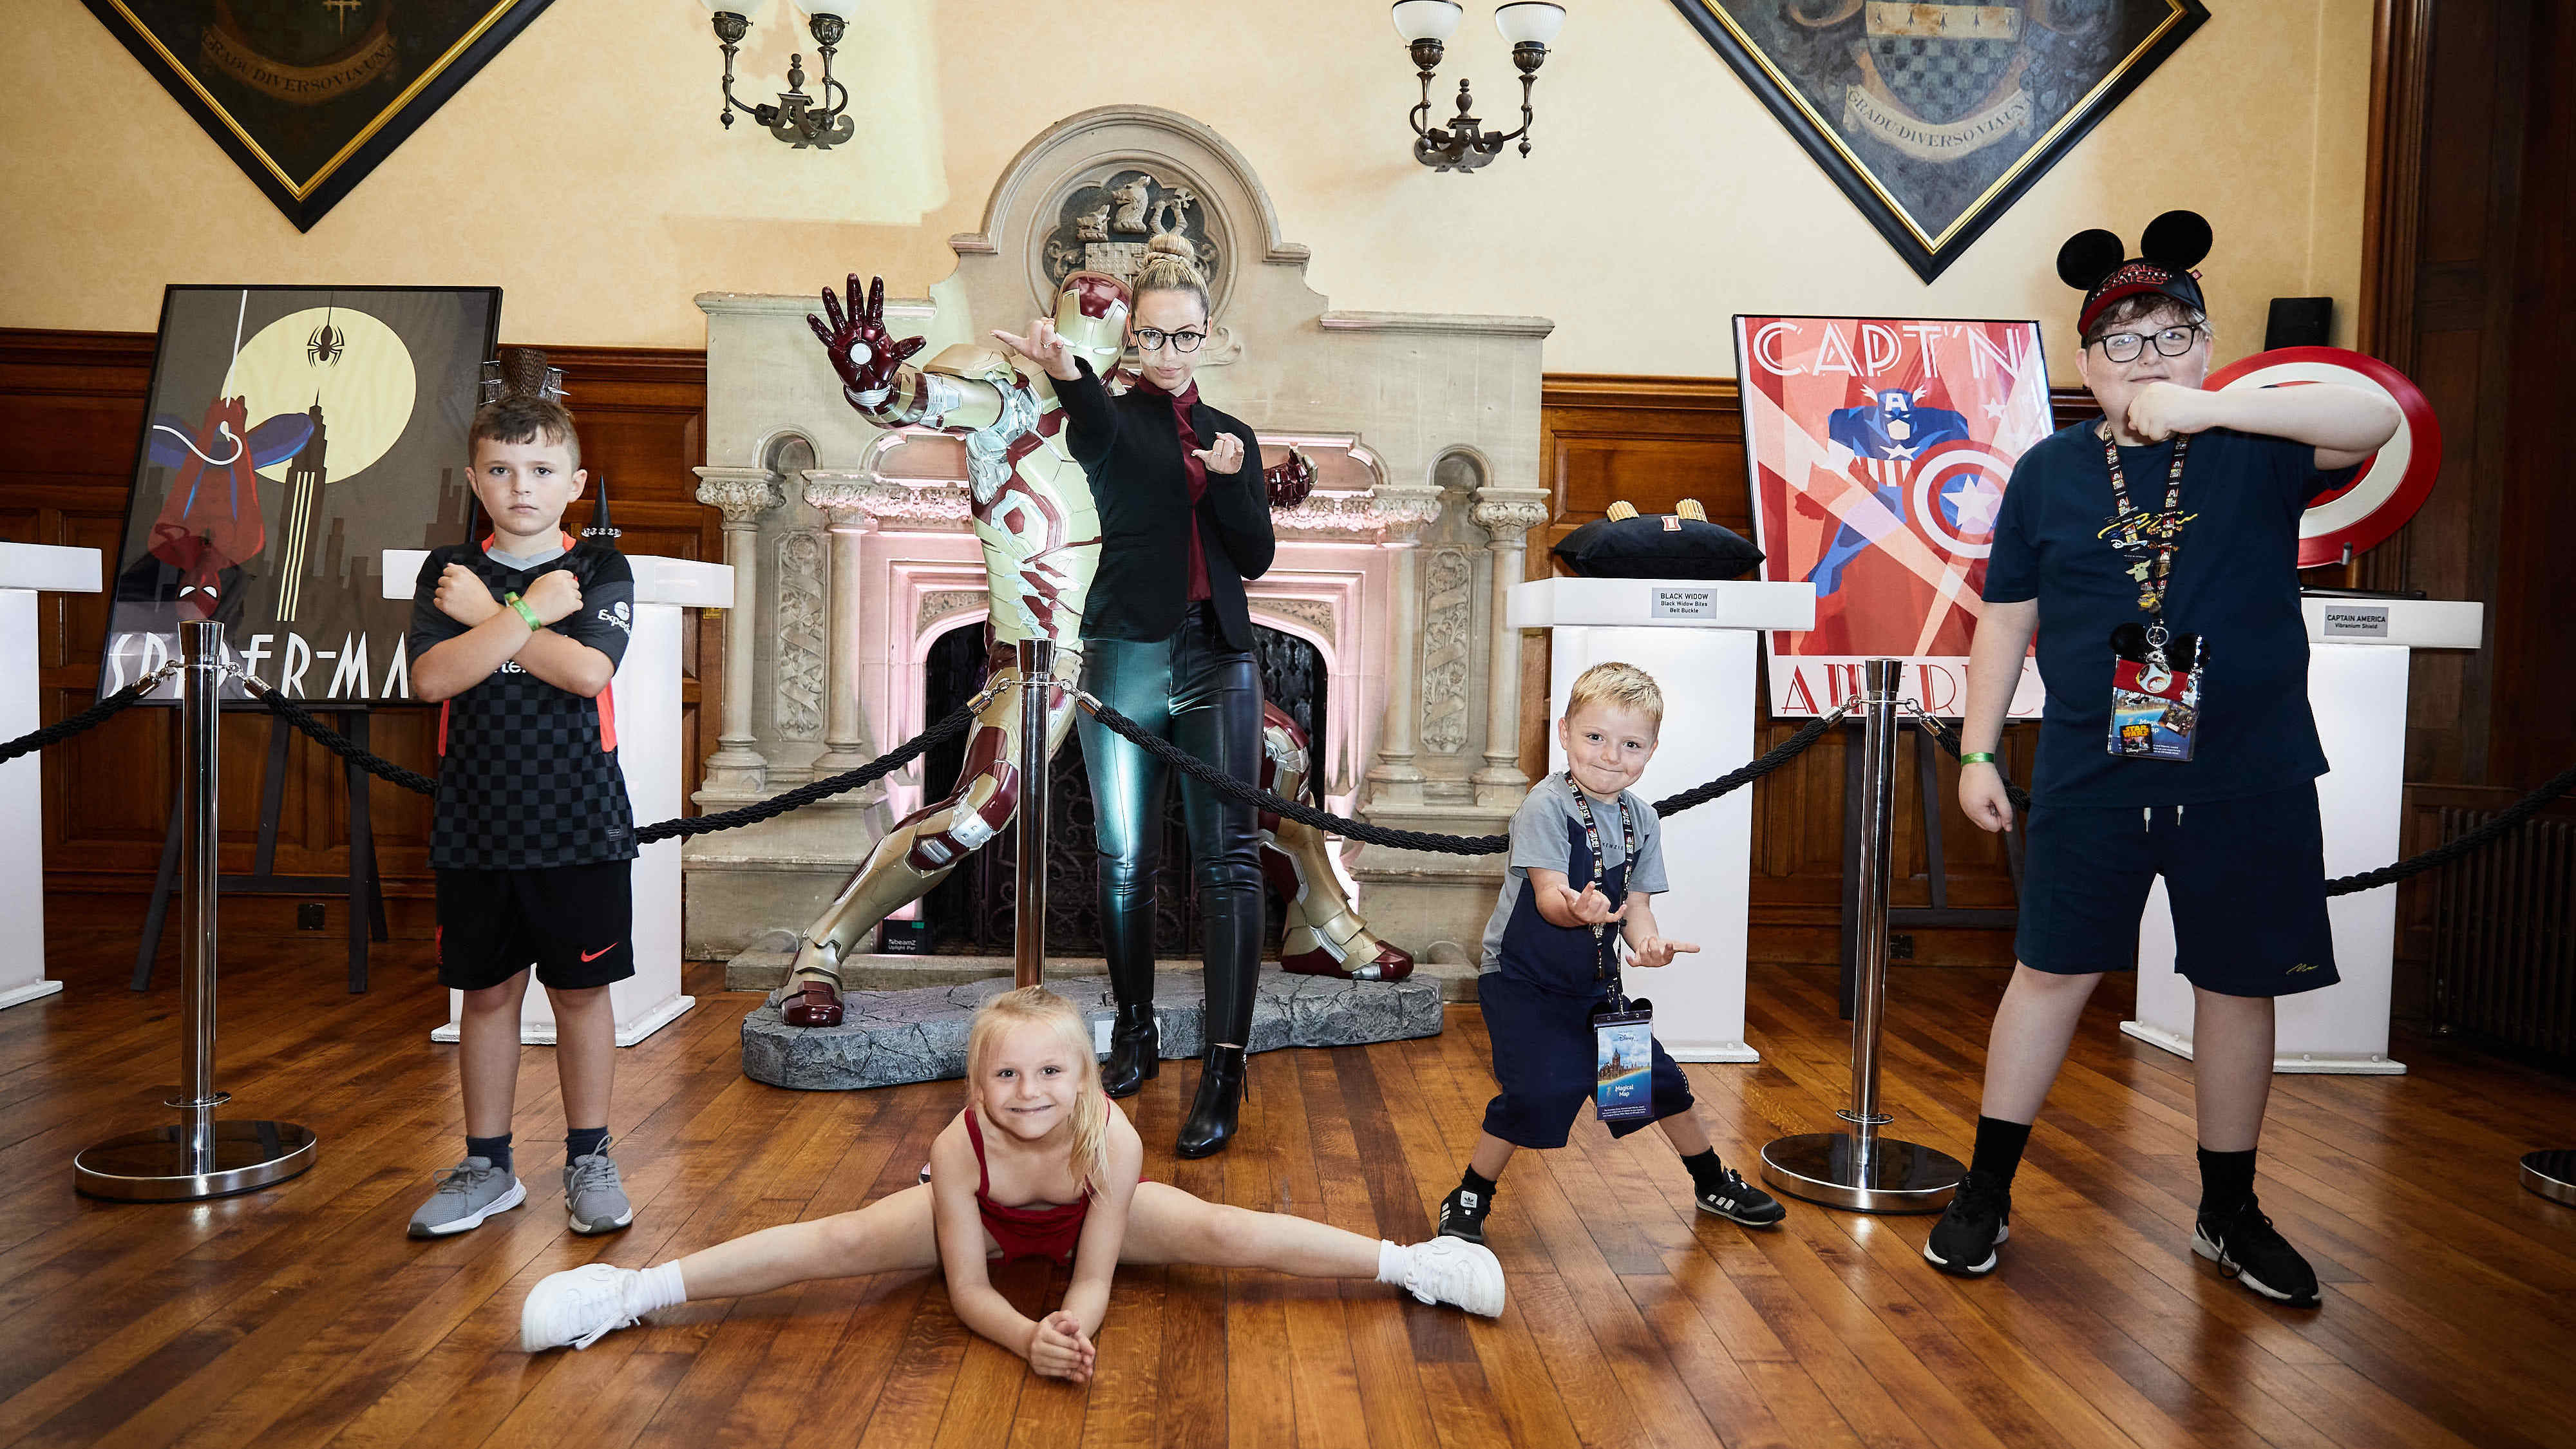 Group picture of children posing with Marvel props